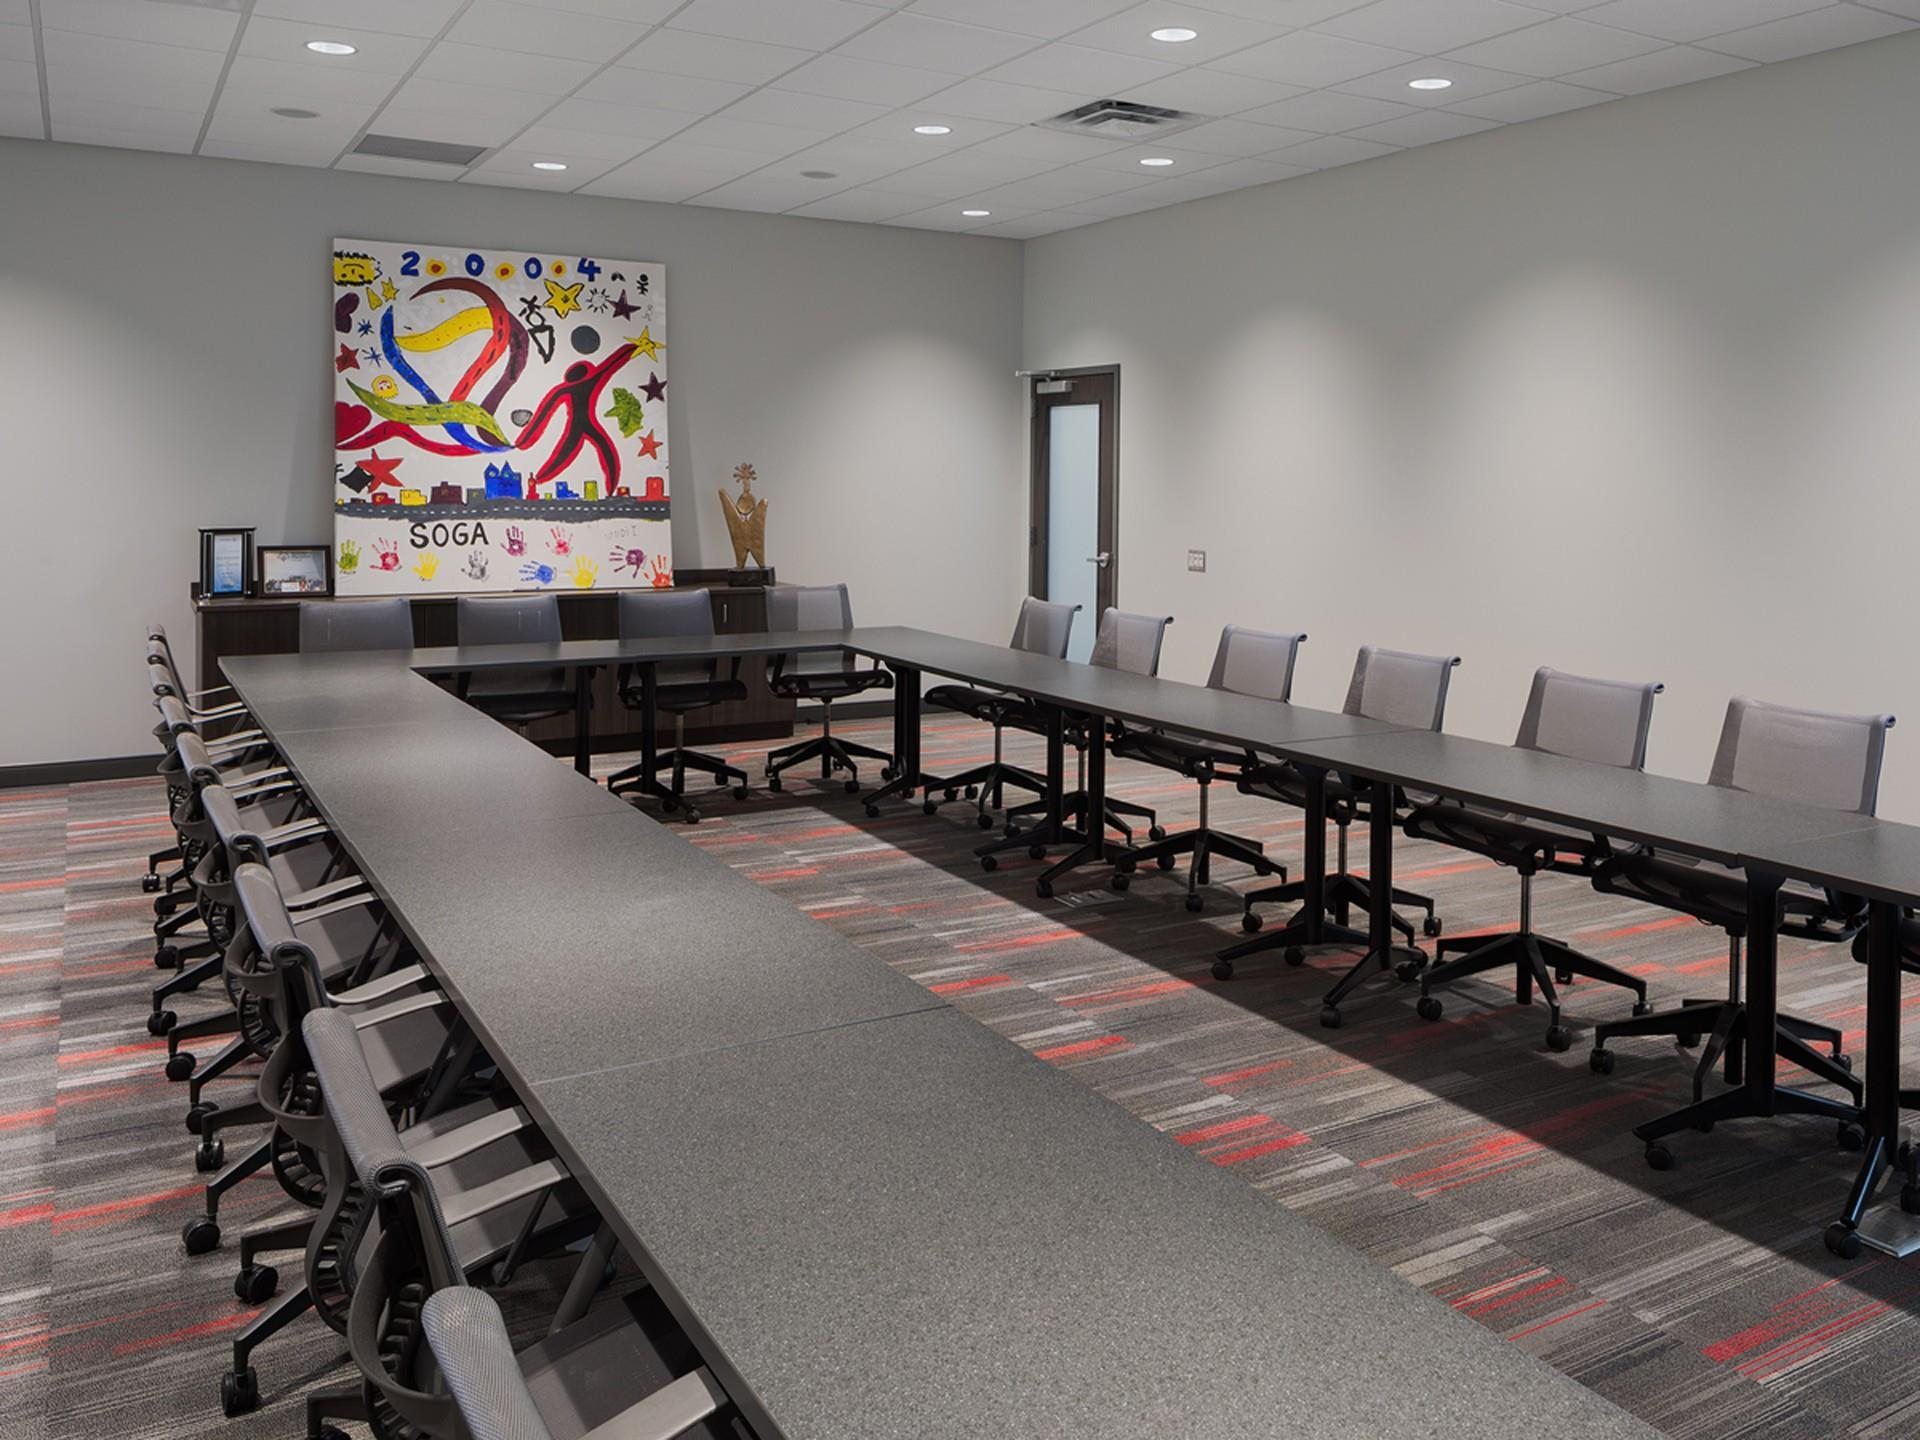 Long u-shaped tables in conferences room with special olympics Georgia colorful signage